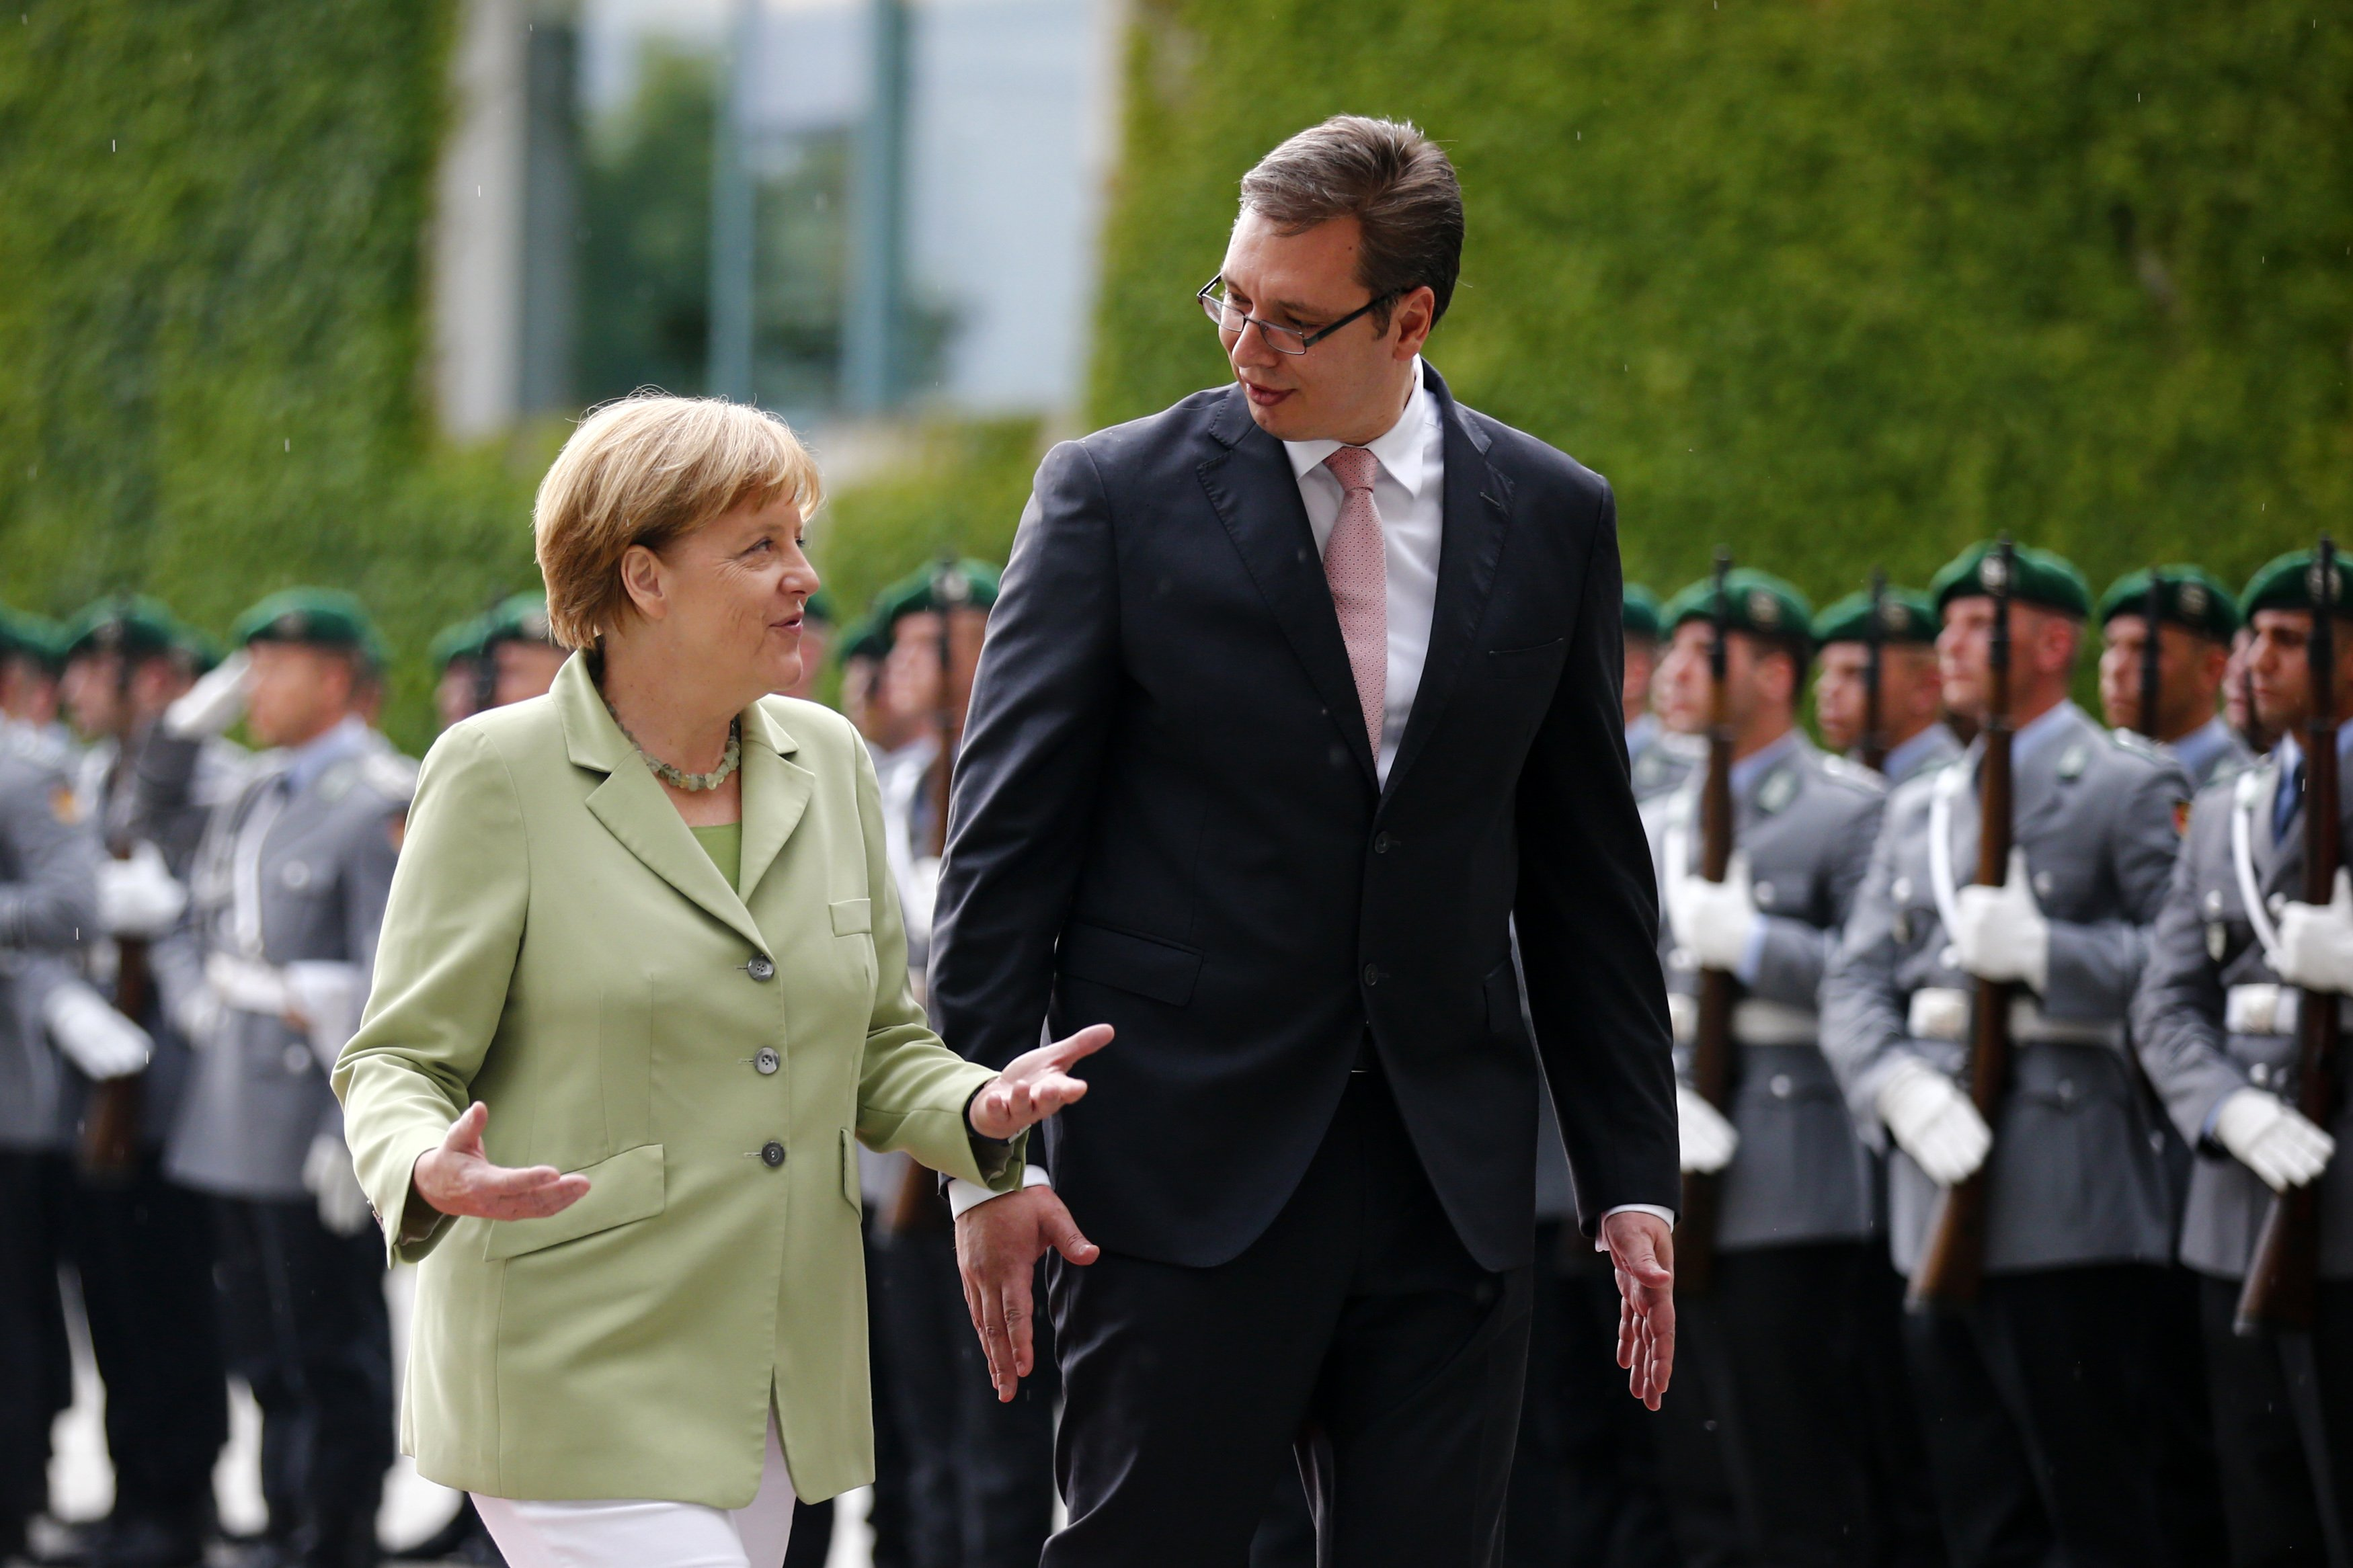 Vucic accepts all of Merkel's demands, opposition leader says